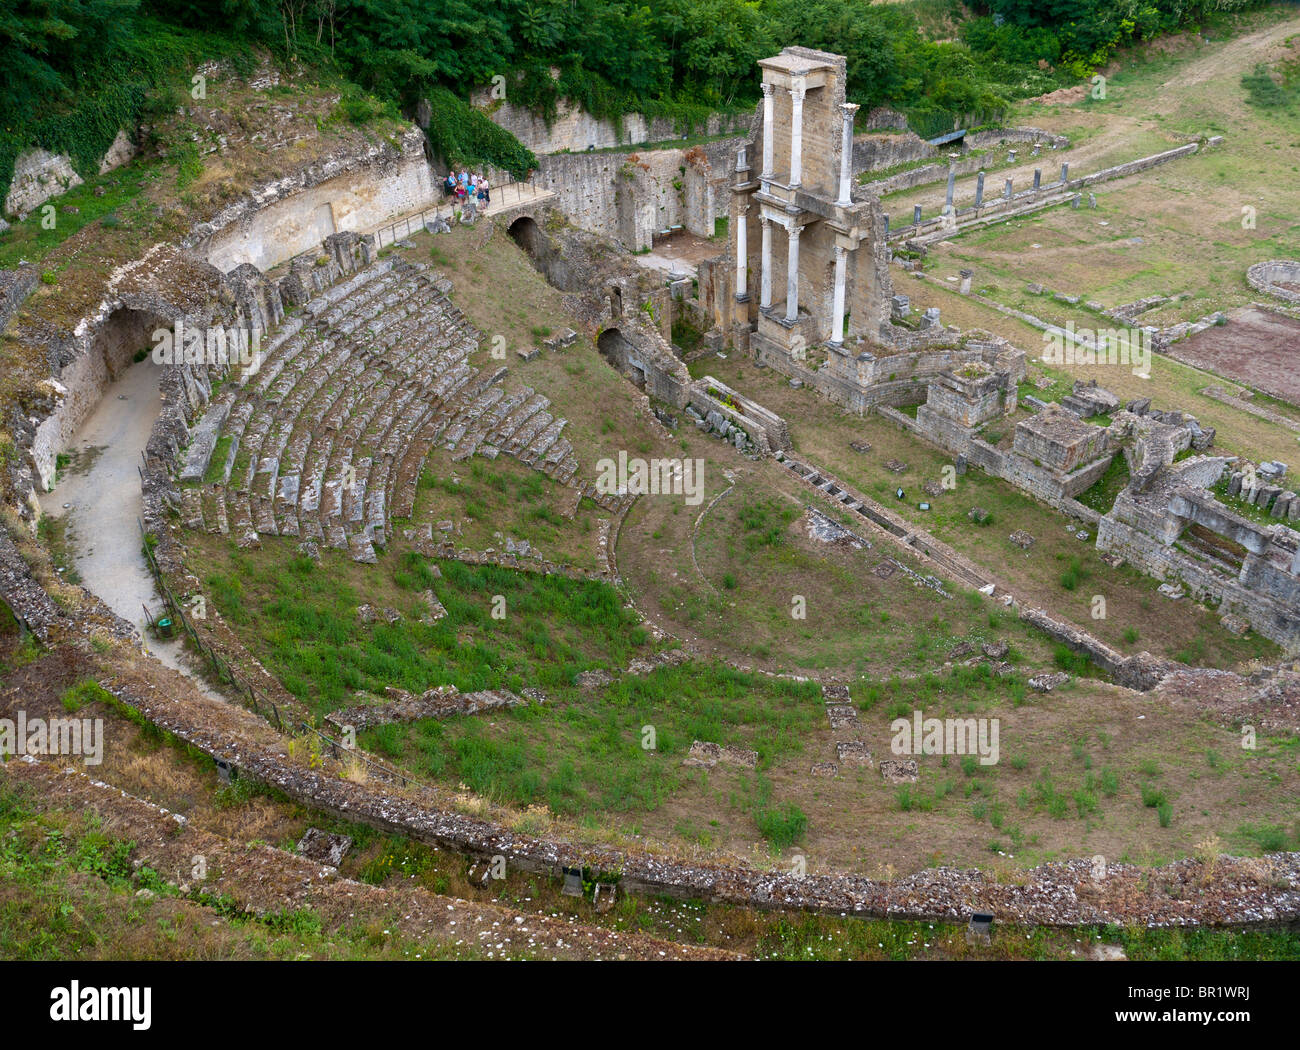 The Teatro Romano, the ancient Roman theatre at Volterra, Tuscany, Italy, built in the reign of emperor Augustus. - Stock Image